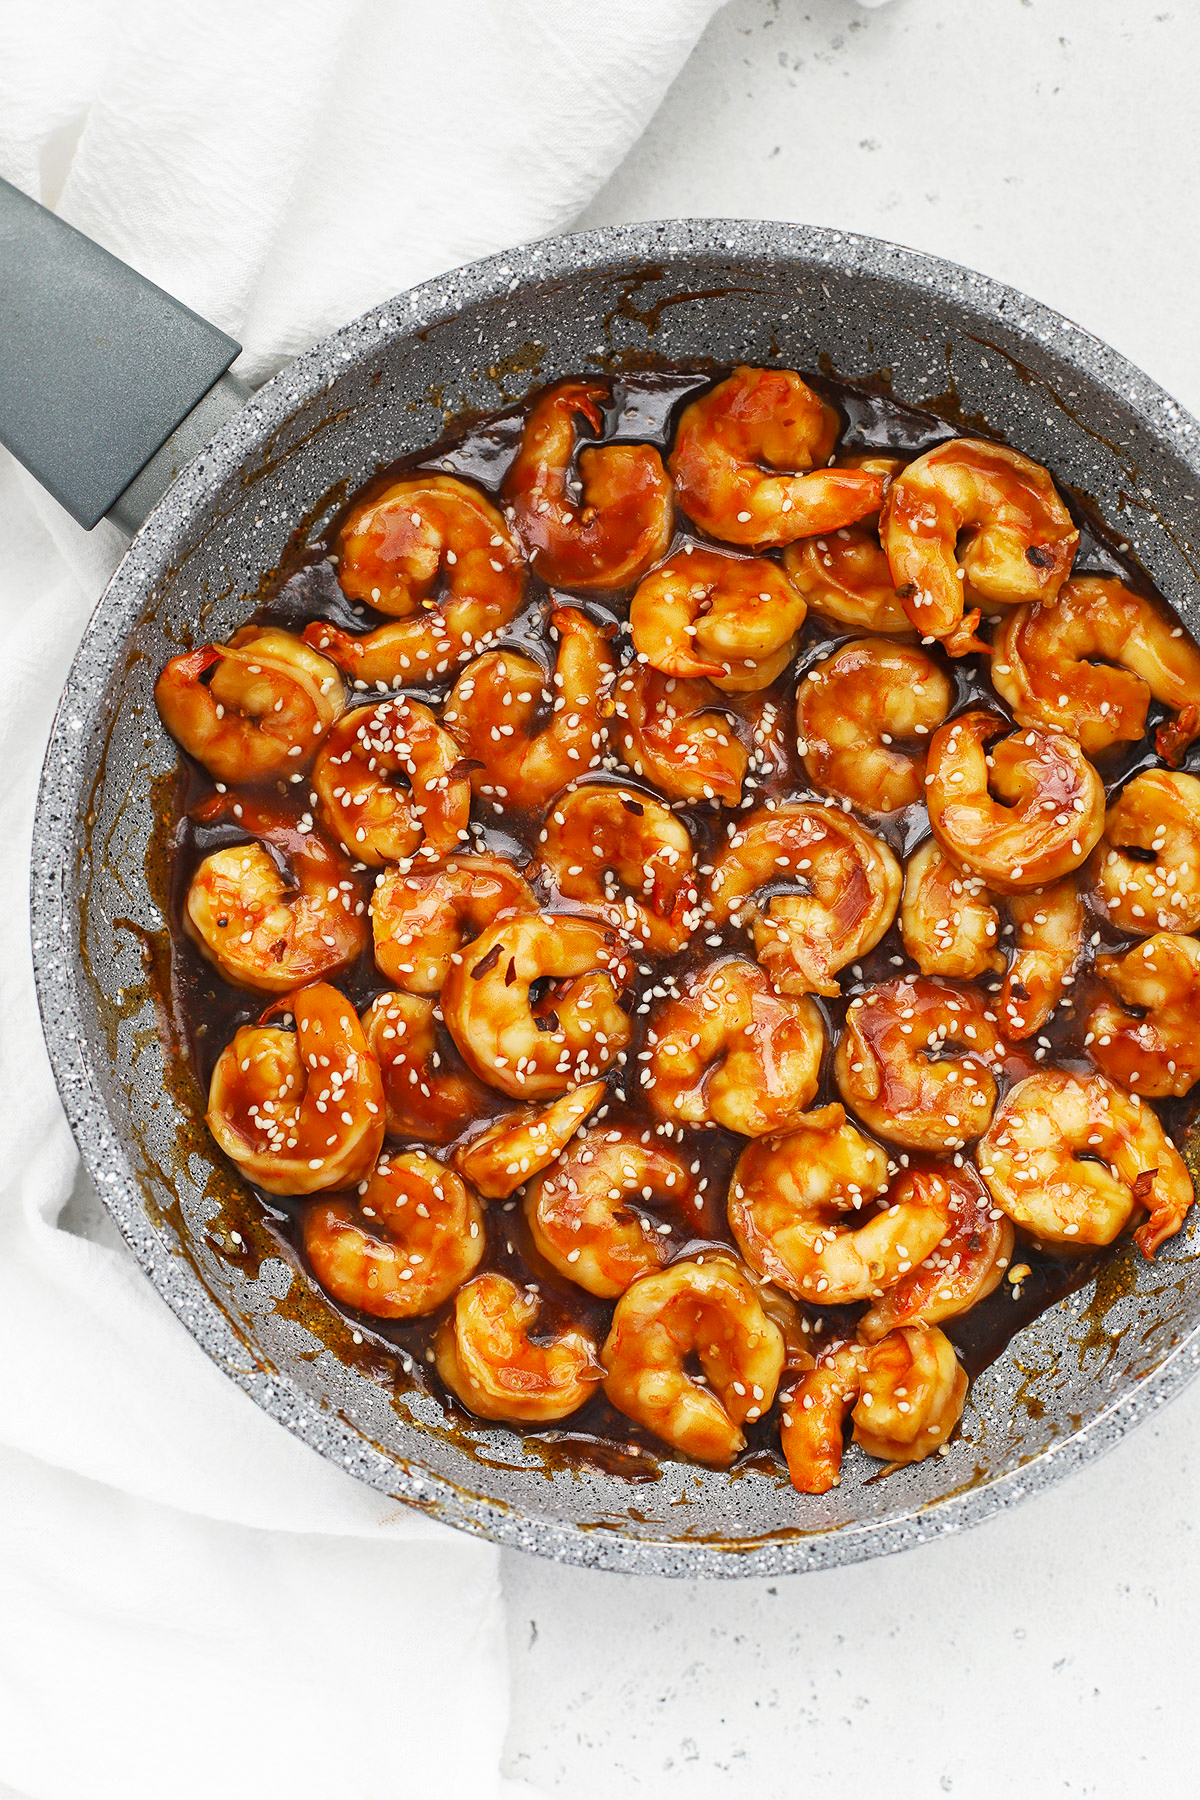 Overhead view of a pan of shrimp coated in sesame sauce